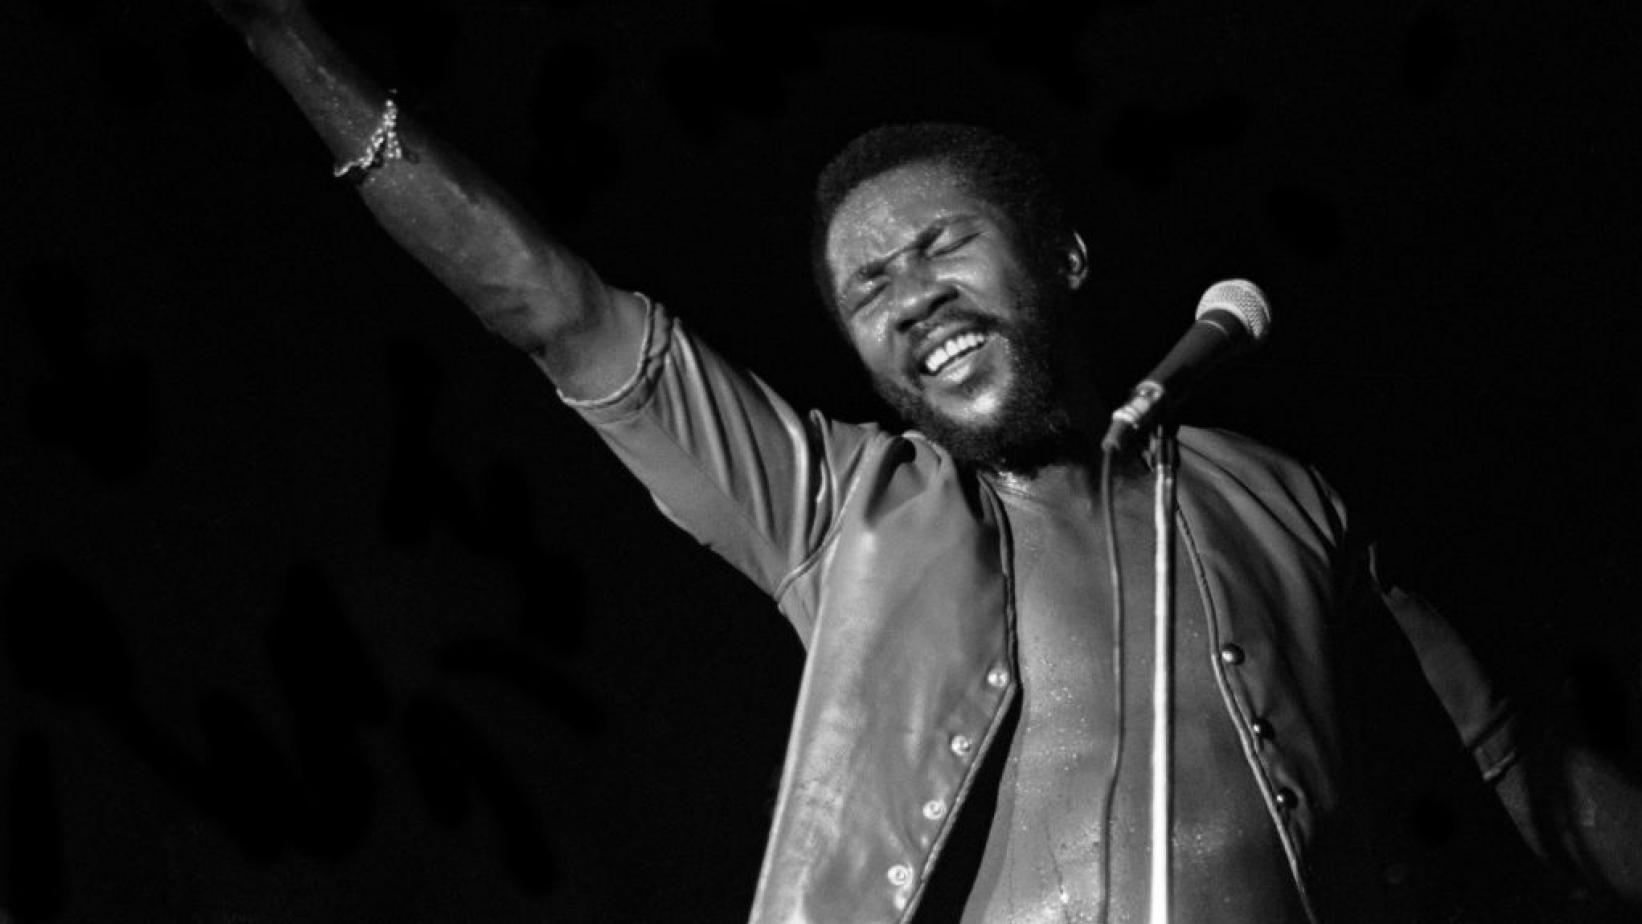 Toots Hibbert of Toots And The Maytals performs in London in 1983